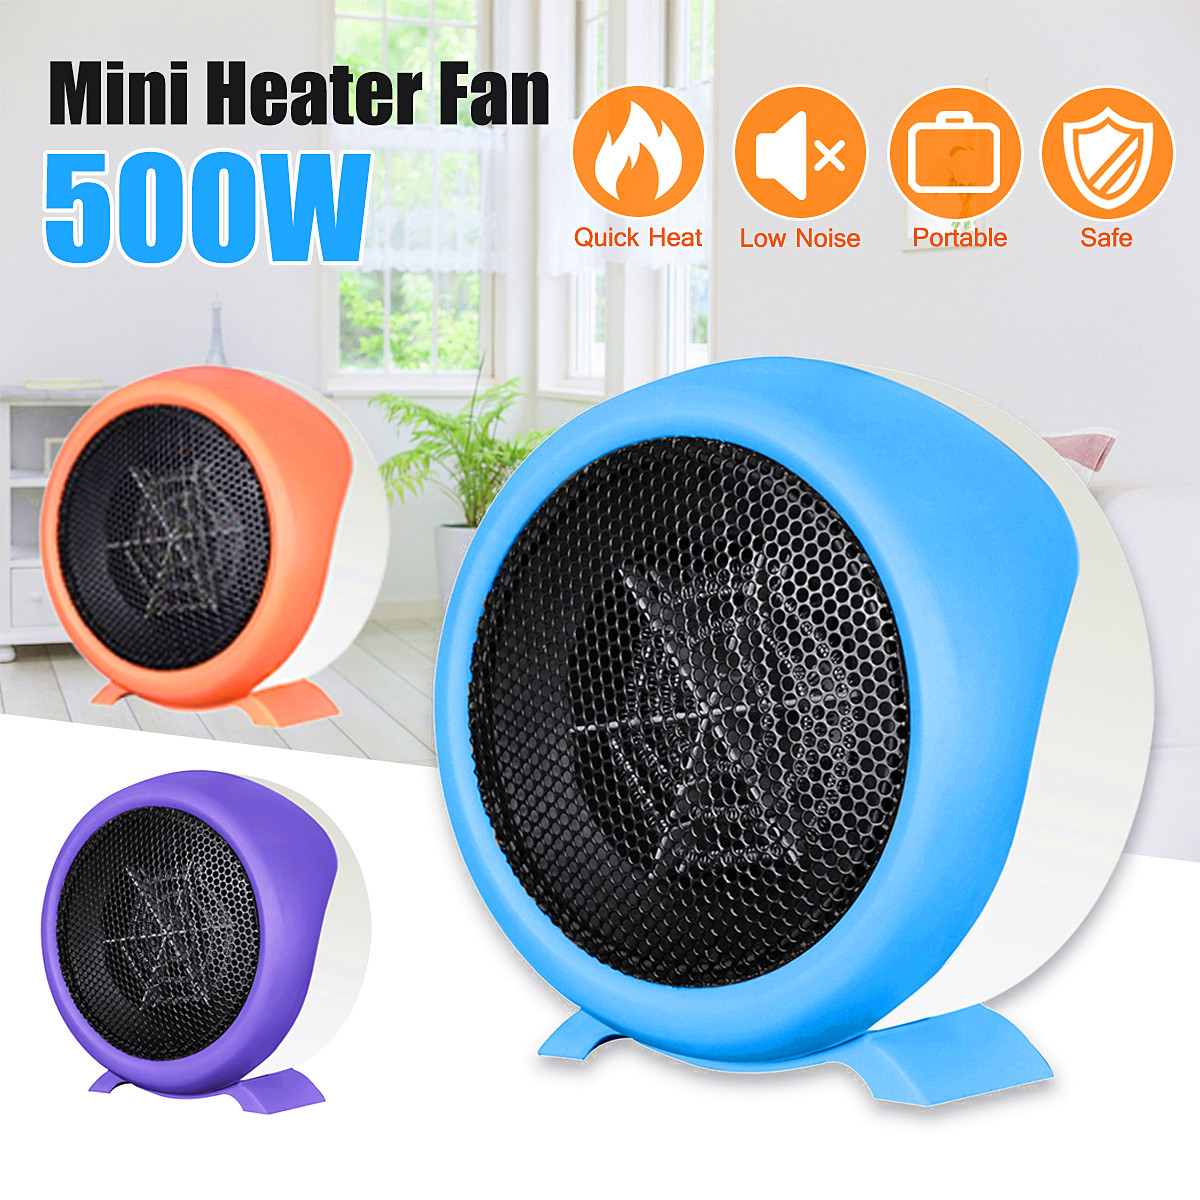 2018 500W 220V Heater Portable Handy Durable Quality Mini Personal Space Heater Electric Winter Warmer Fan Home Office electric portable heater handy durable mini room fan indoor ceramic space heater electric winter warmer fan for office home 220v